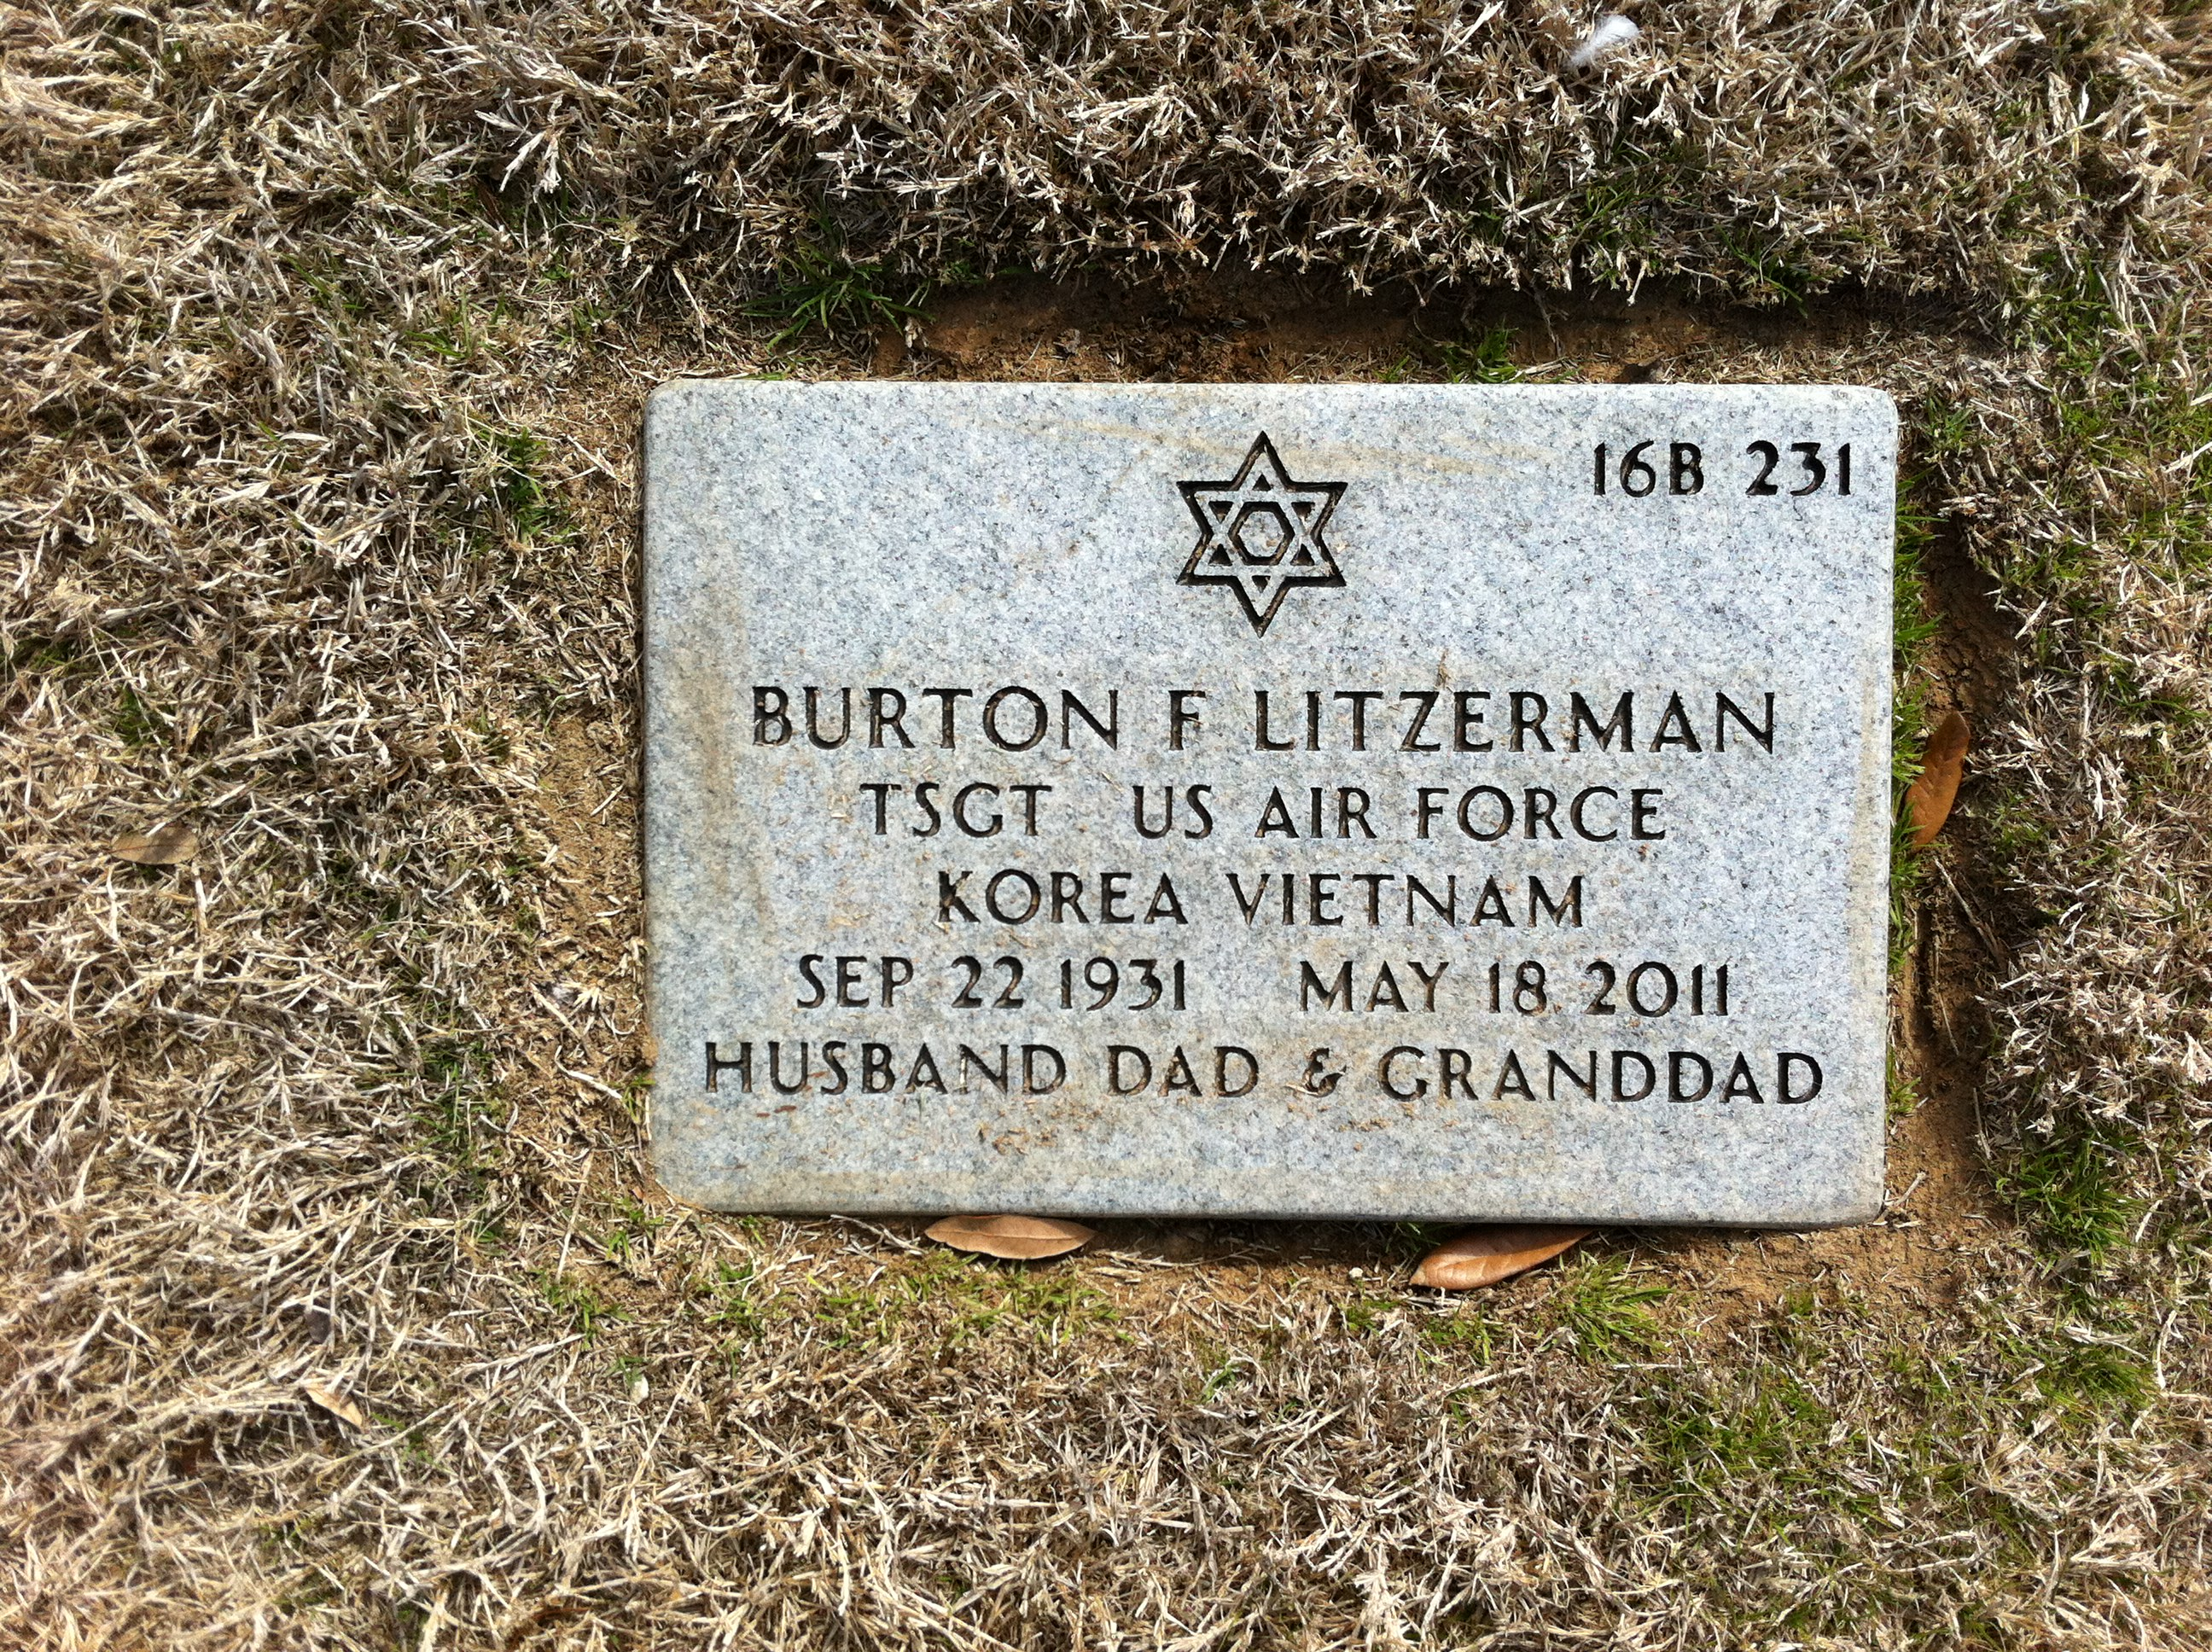 871593503e Burton Frederick Litzerman (1931-2011) - Find A Grave Memorial